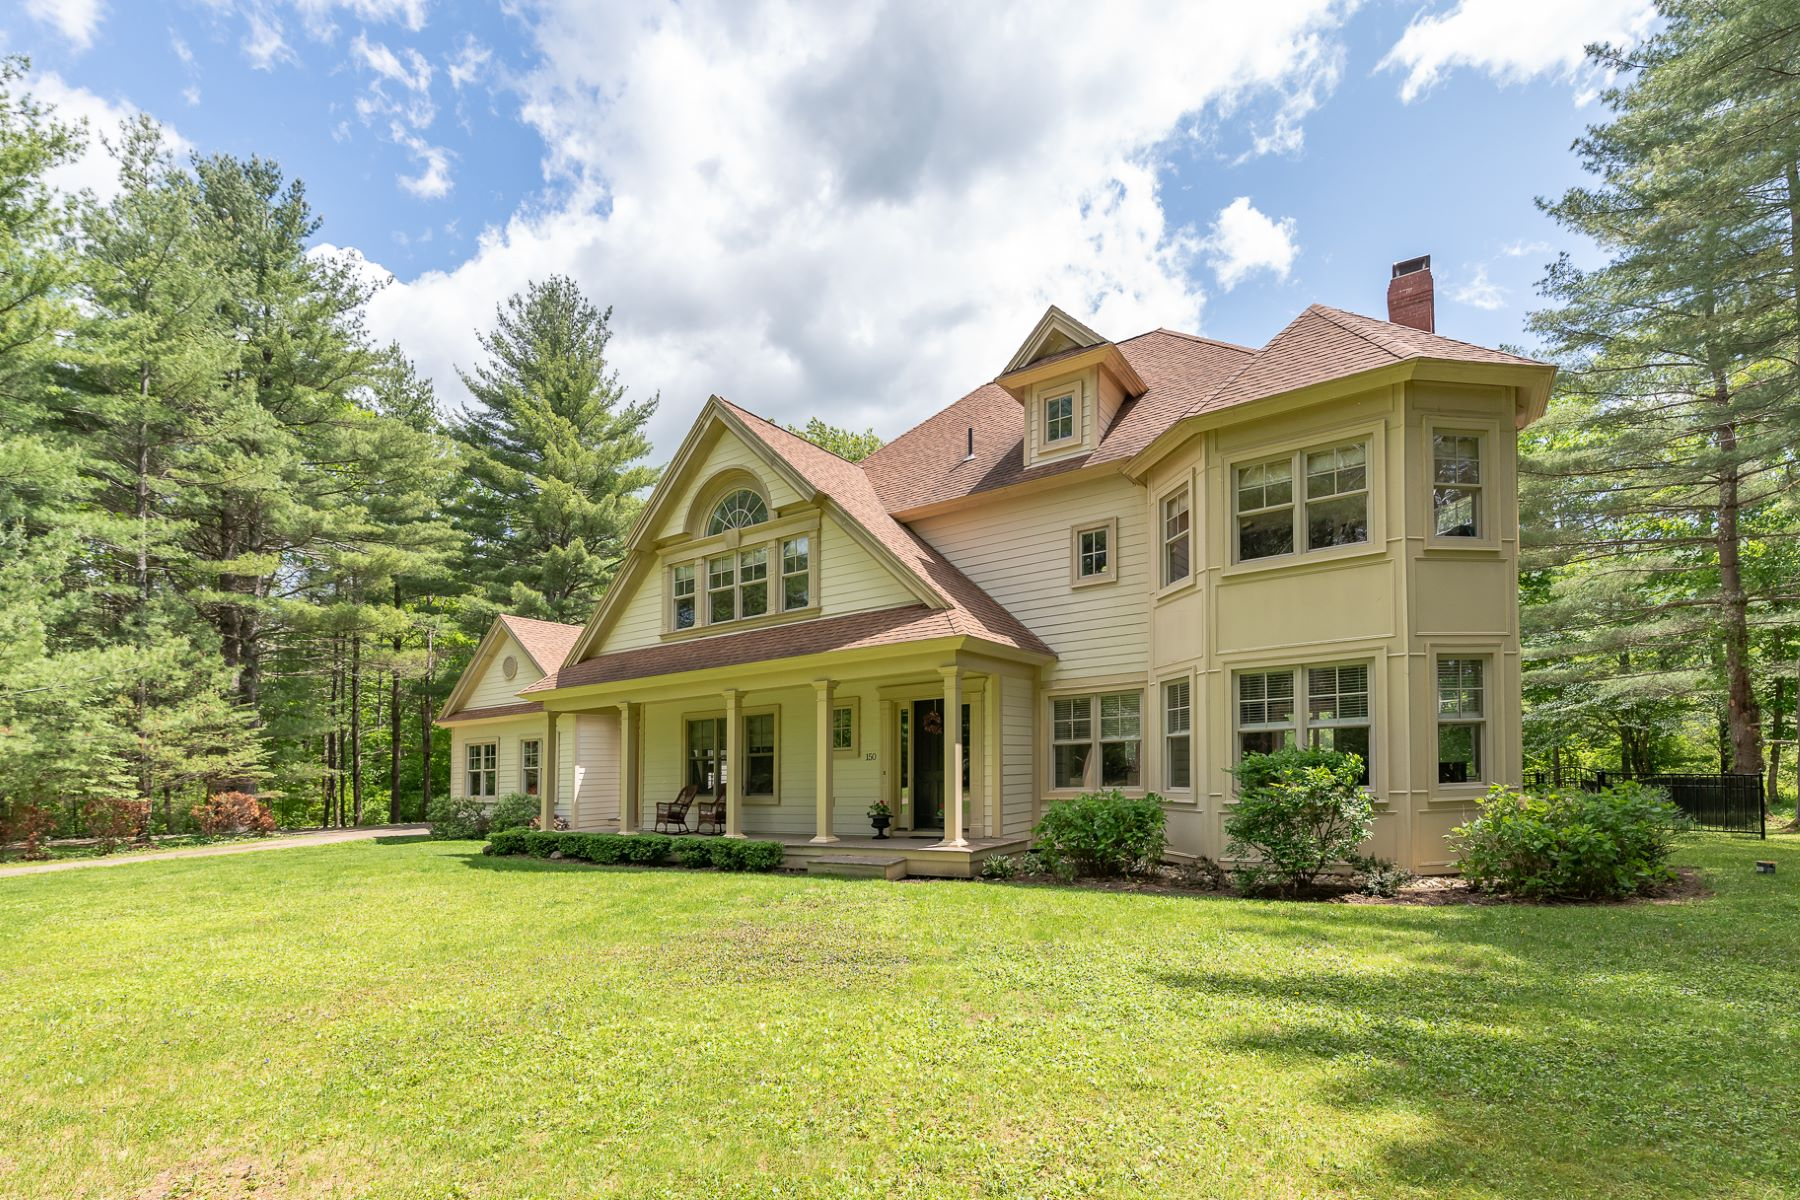 Single Family Homes for Sale at 2006 Contemporary Farmhouse 150 Lefevre Way Manchester, Vermont 05255 United States